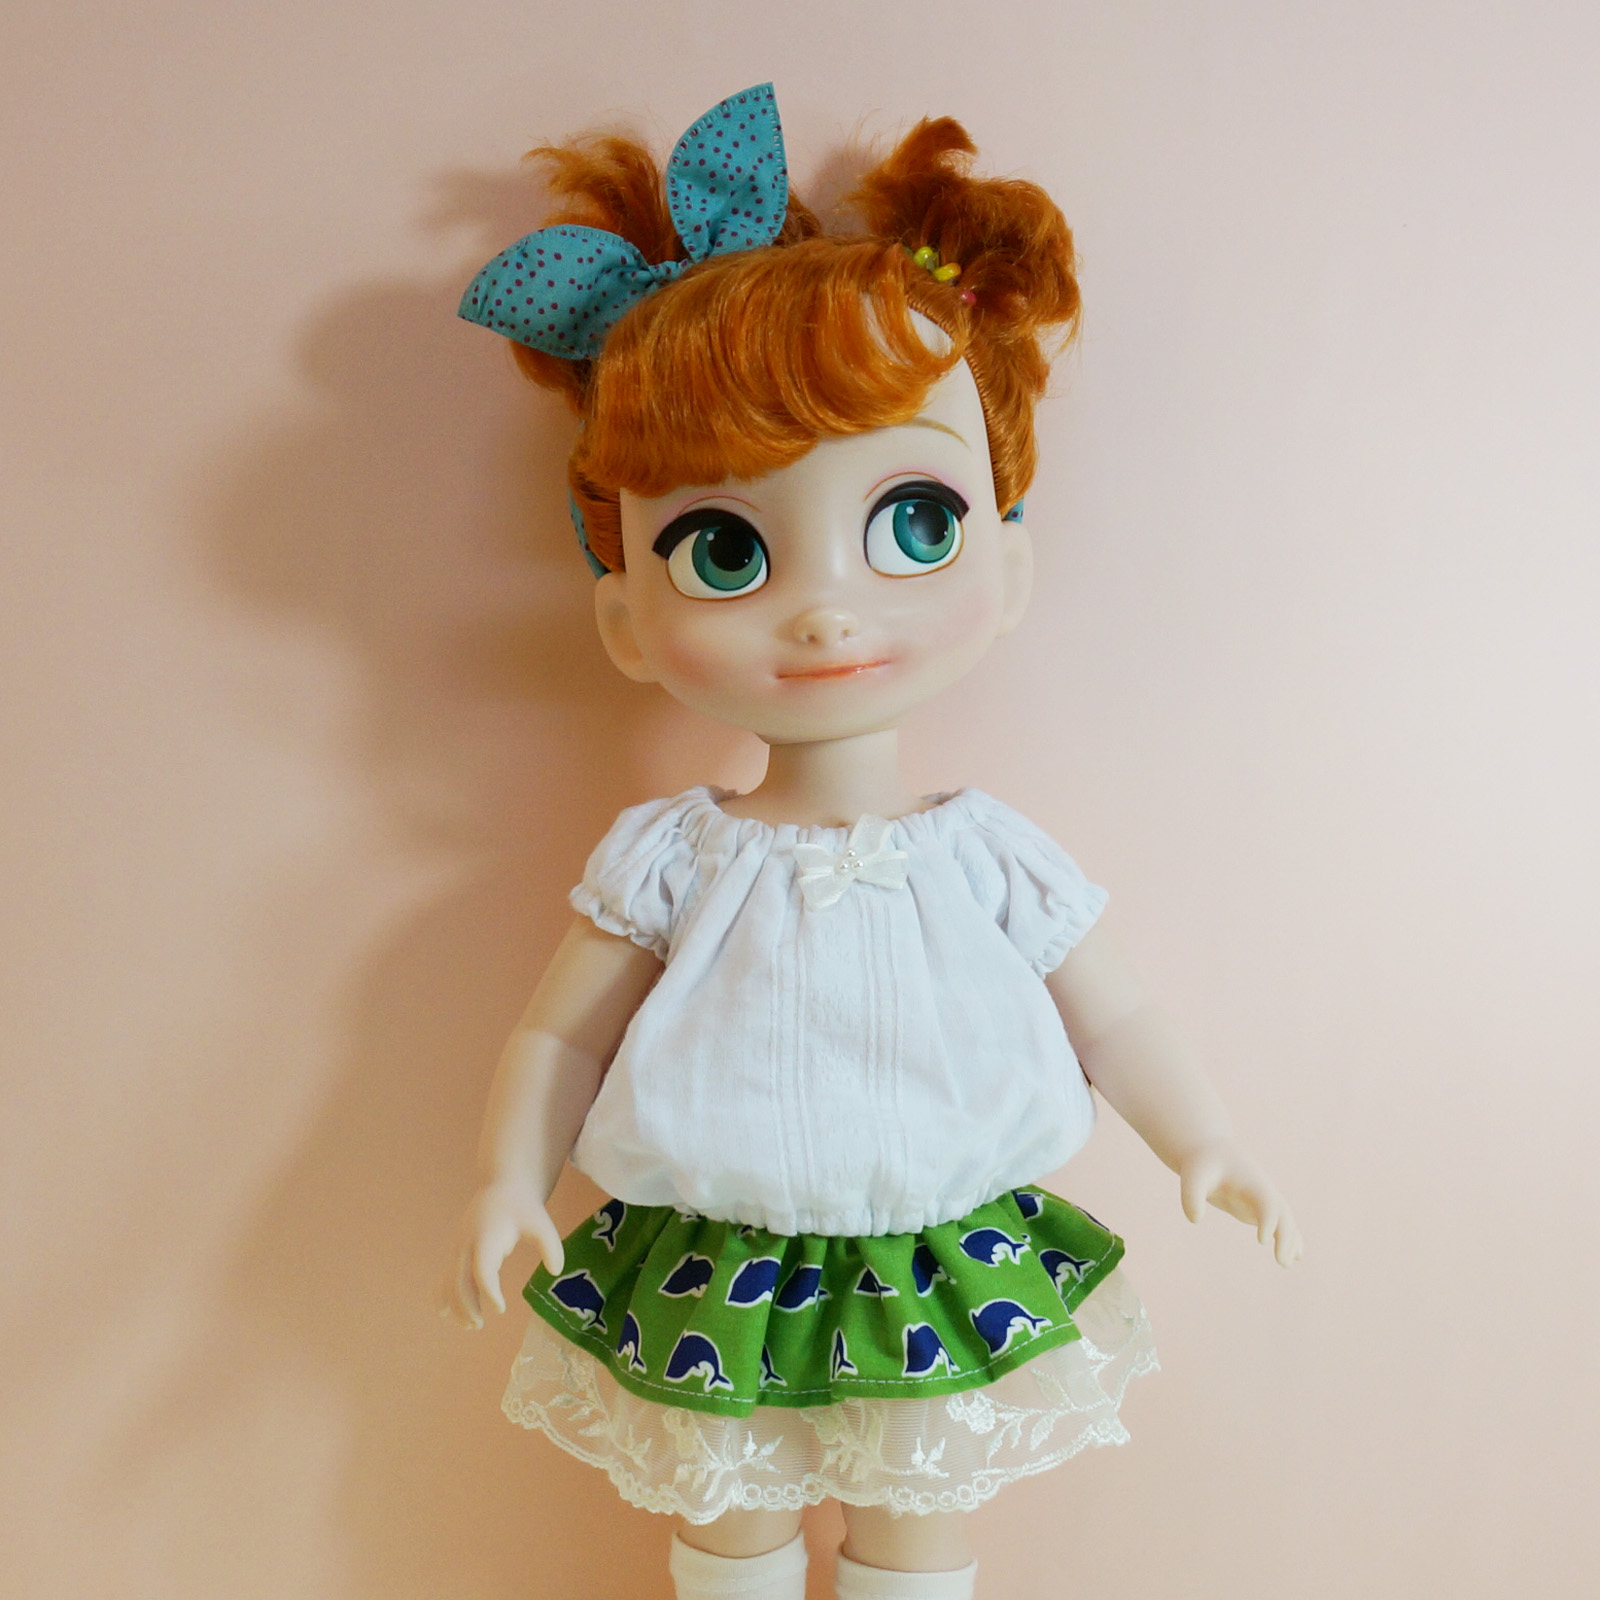 Disney Princess Toddler Doll With Dress: Disney Baby Doll Clothes Dolphine Set Clothing Animator's